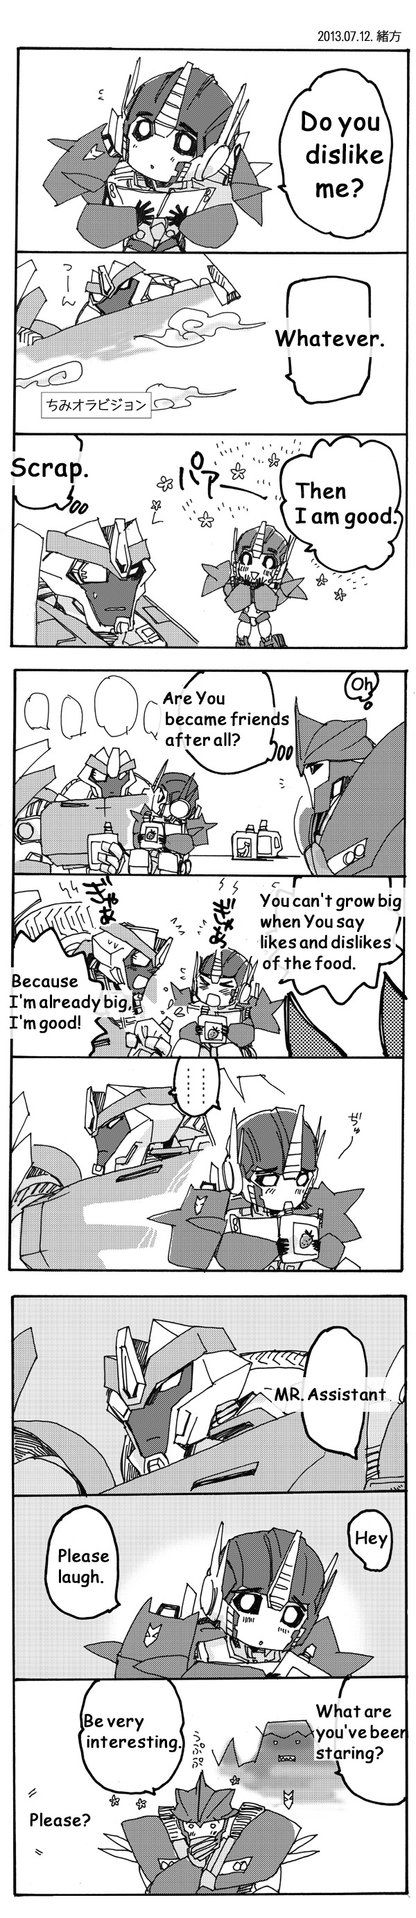 chimi_optimus_and_breakdown_3_in_english_by_ogata_dragon_fight-d6tke4d.jpg (416×1918)